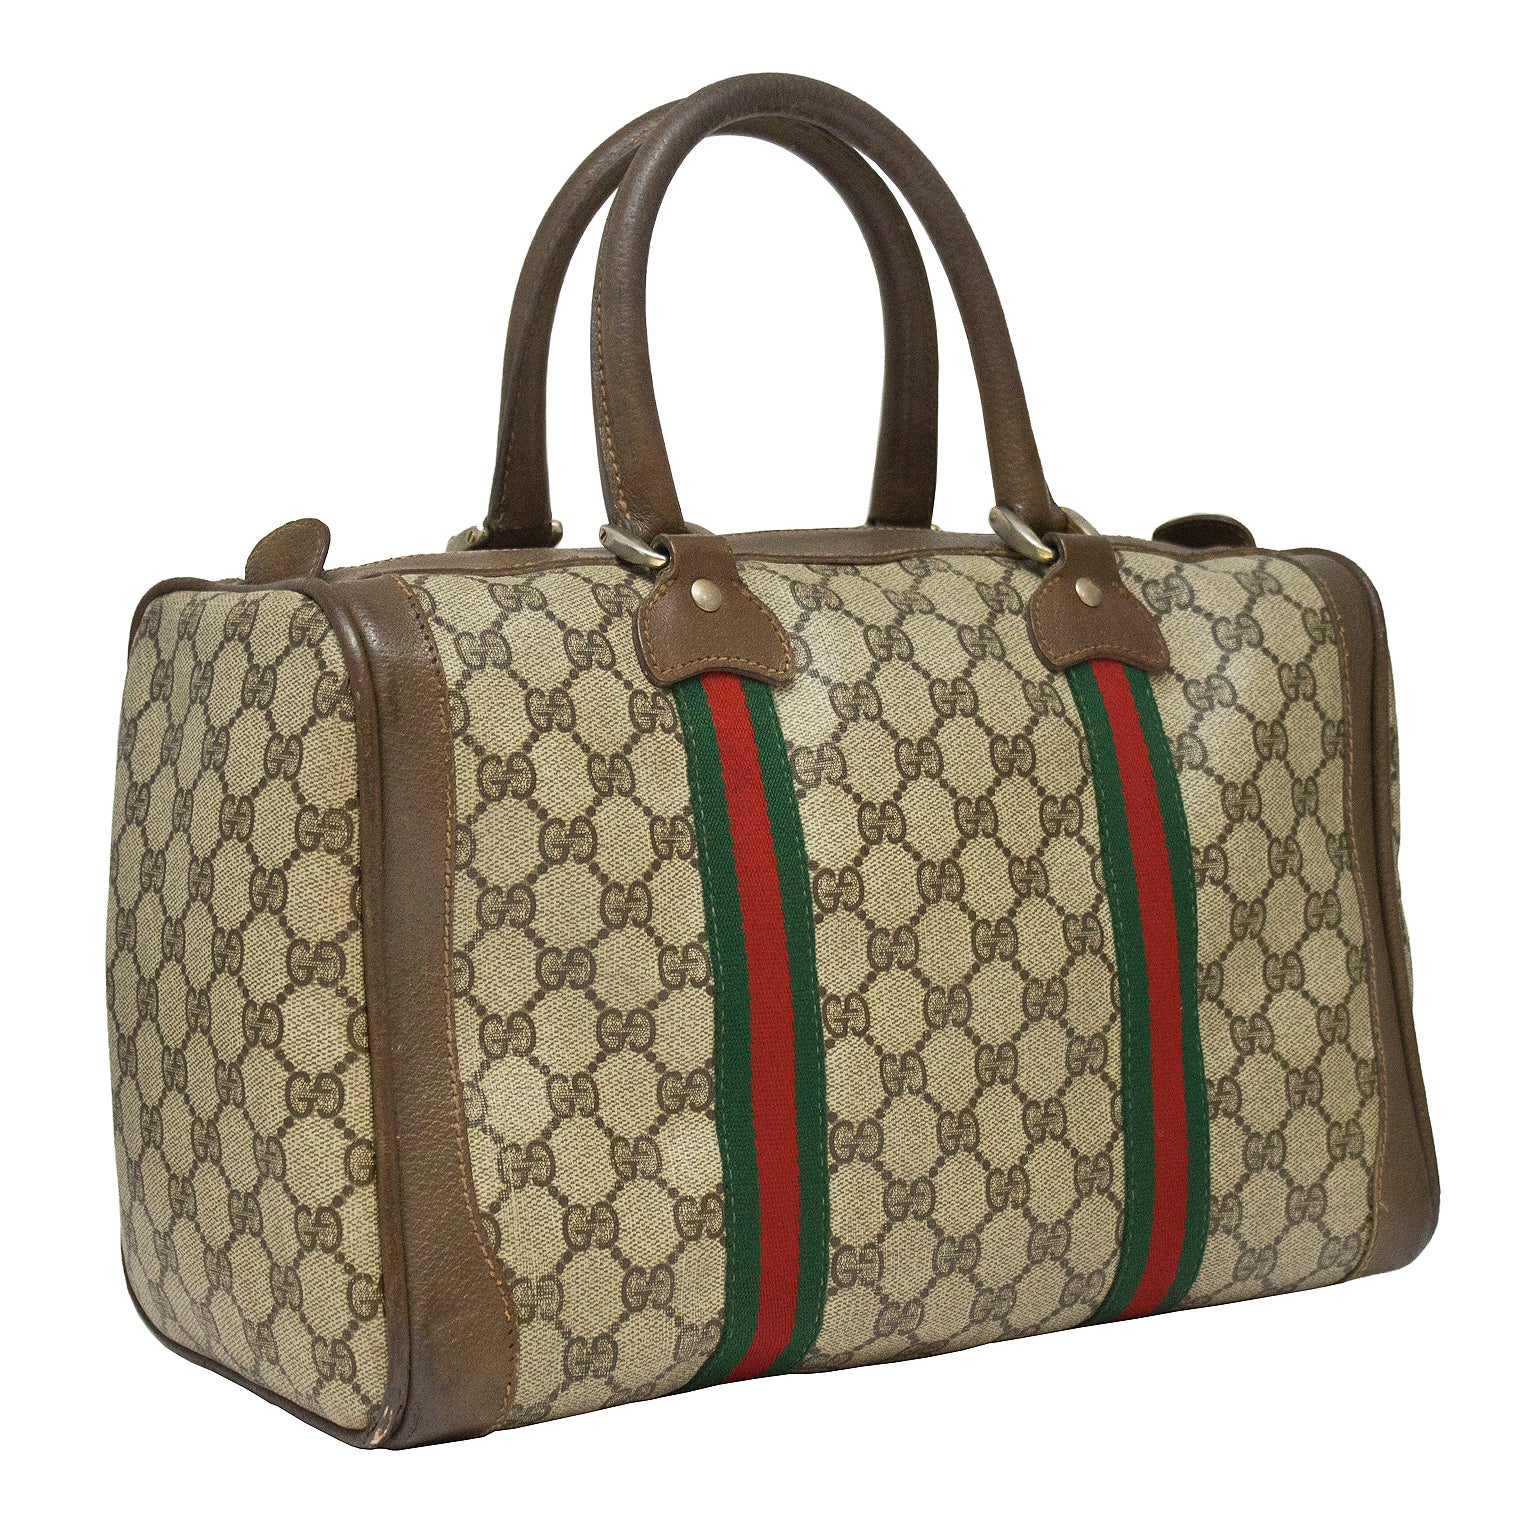 71379d770941 1970's Gucci Monogram Boston Bag at 1stdibs